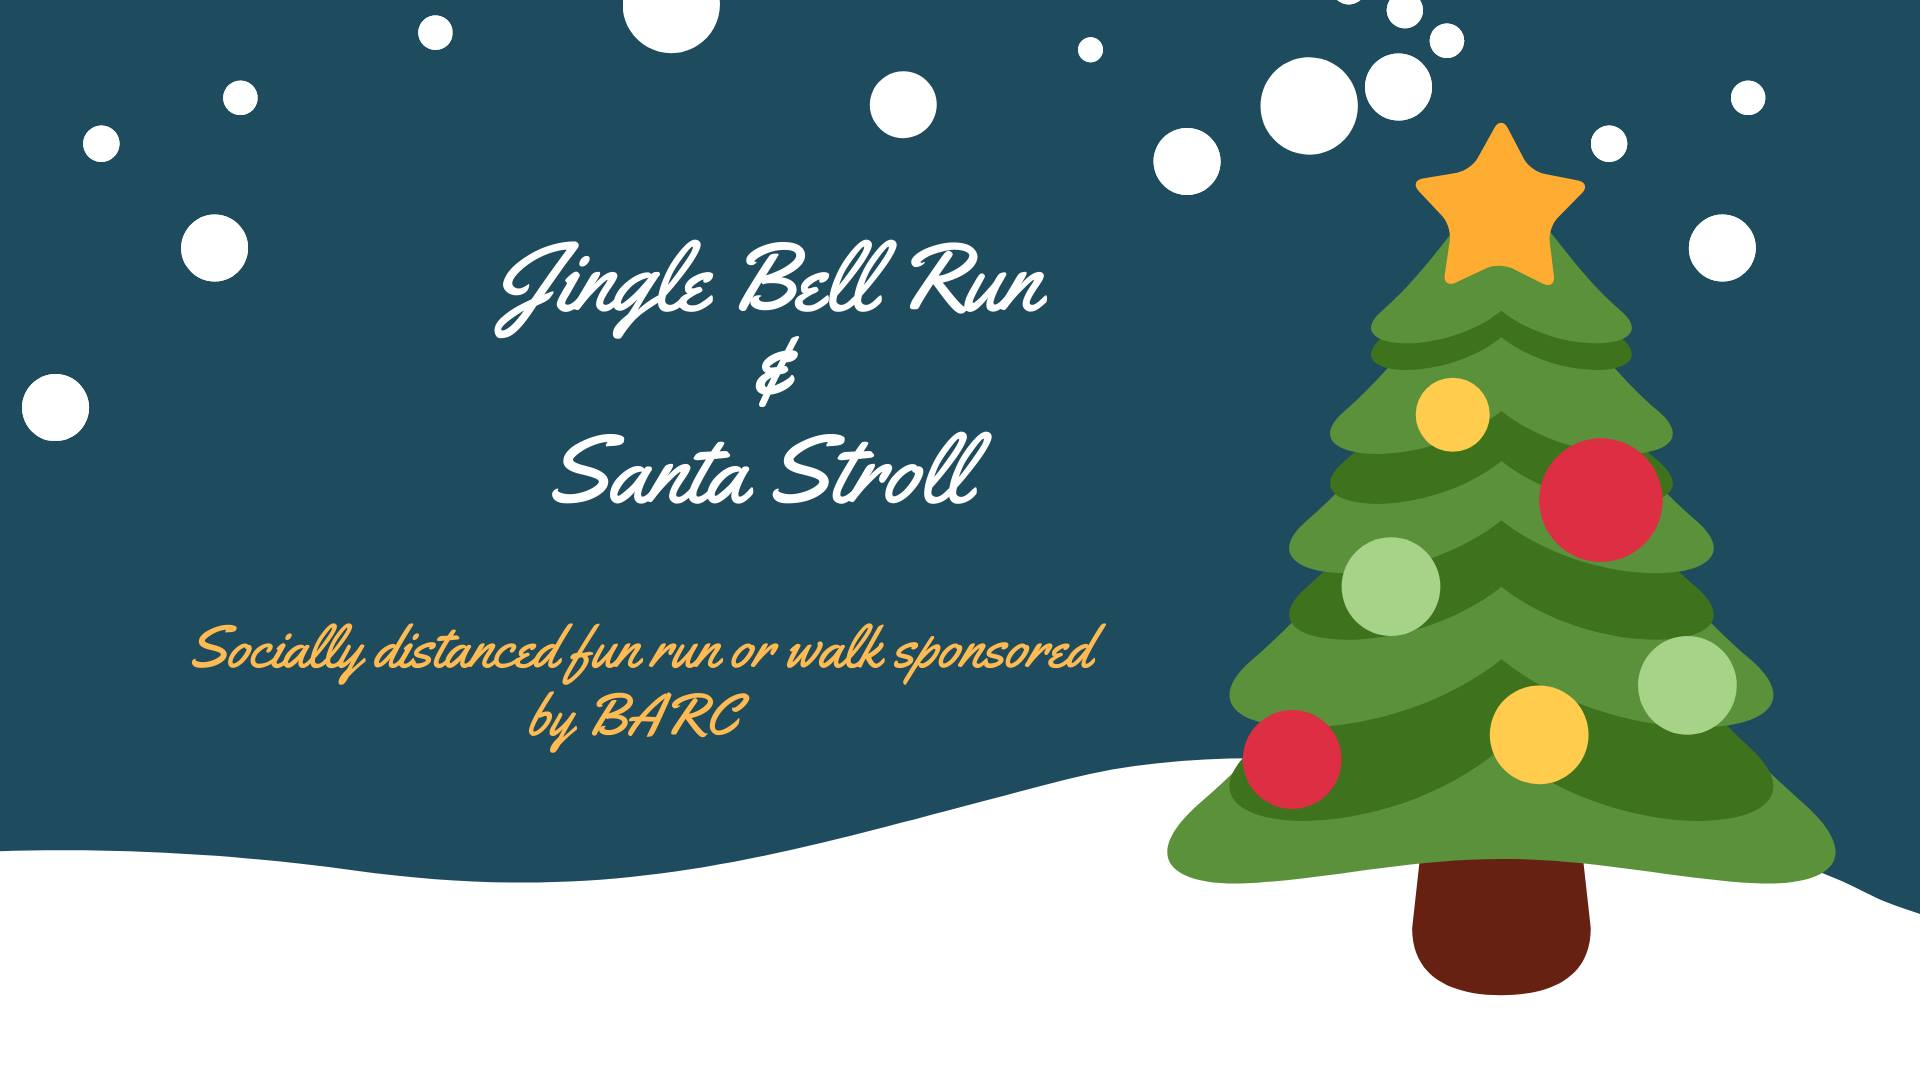 Things To Do-Jingle Bell Run & Santa Stroll